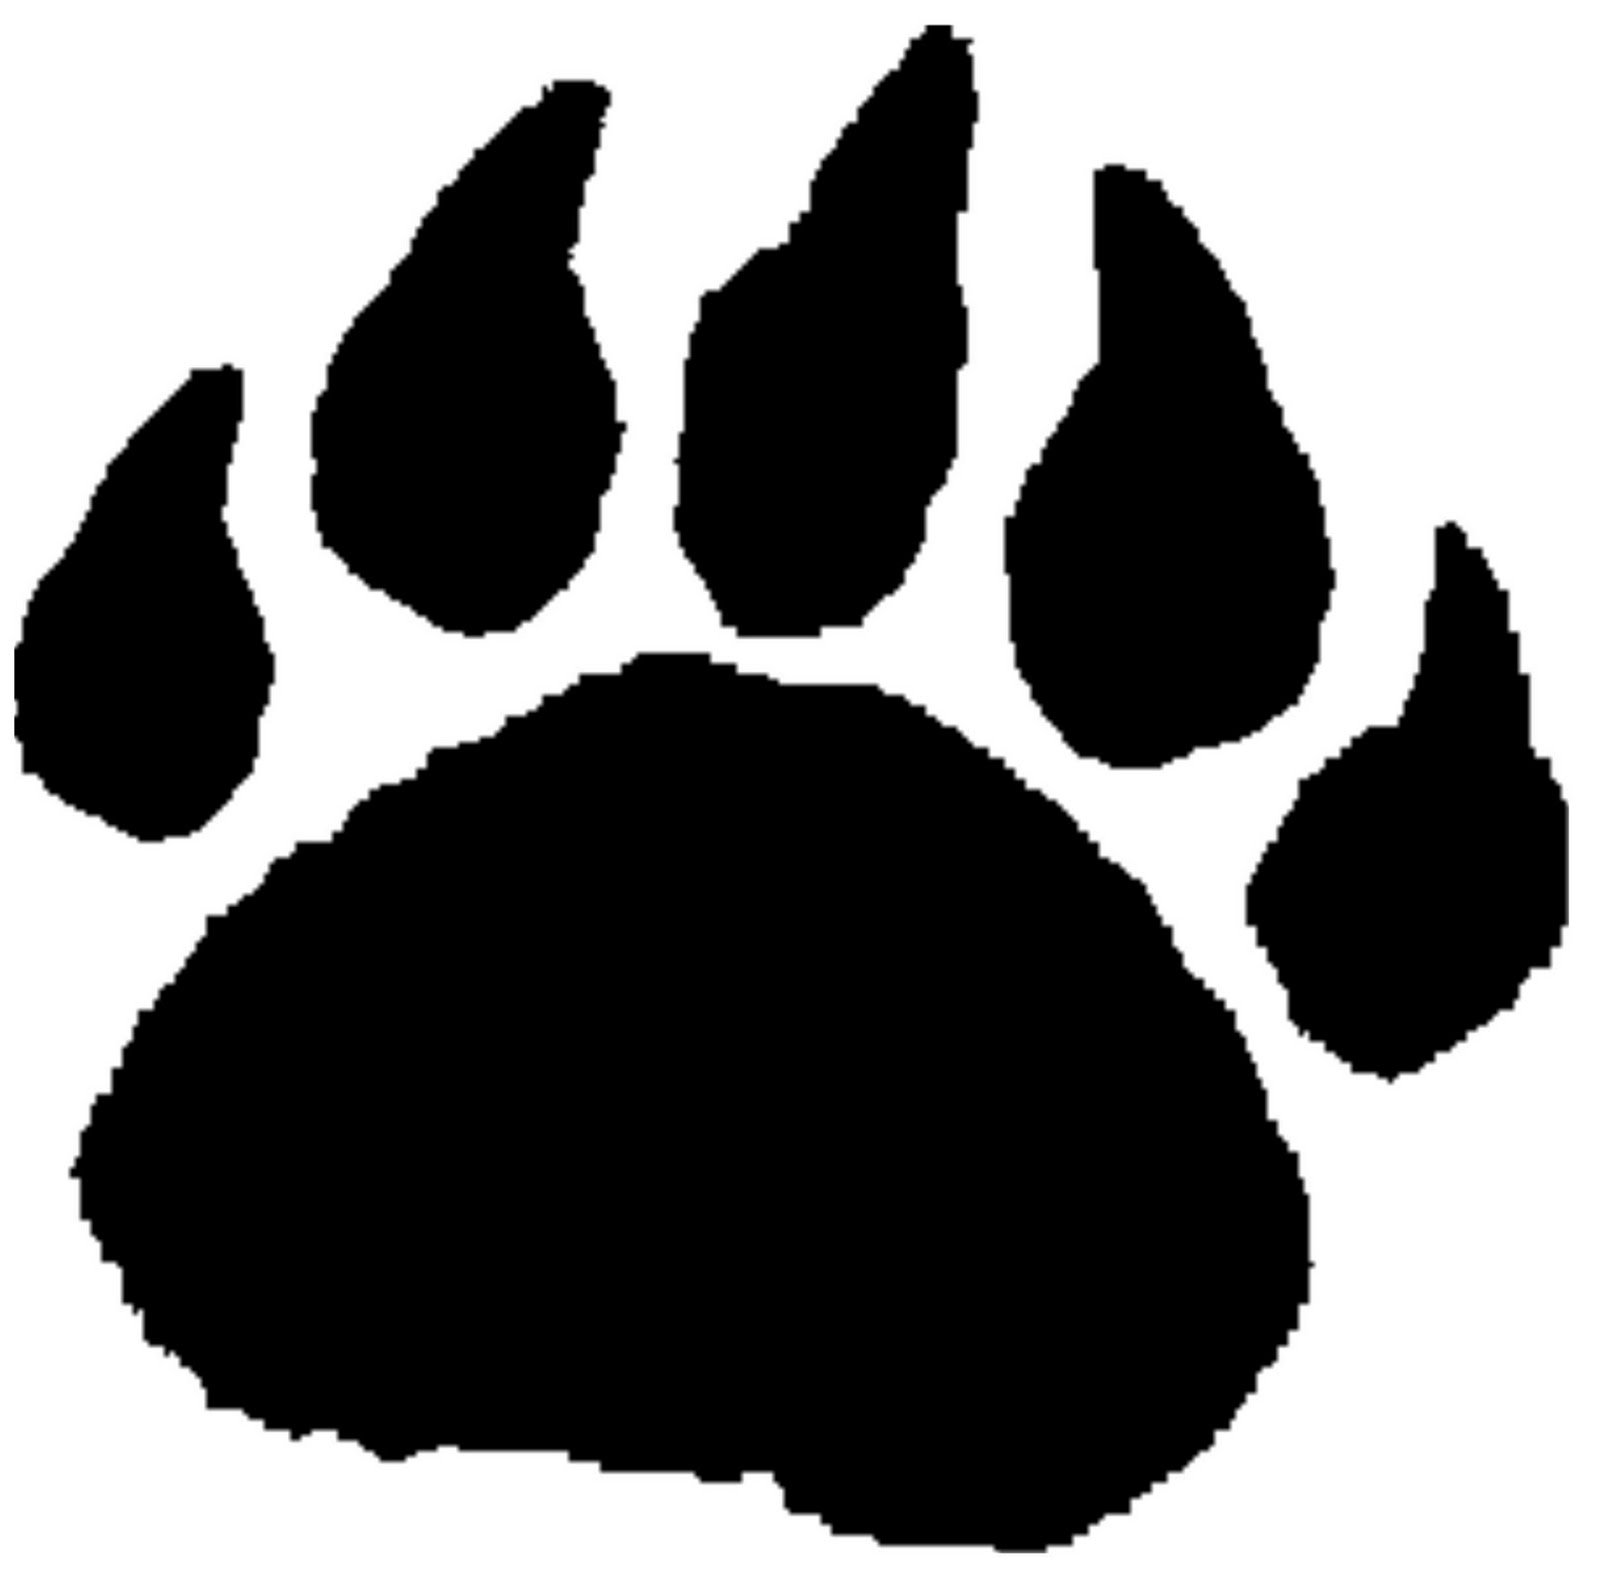 Bear Paw Clipart Black And White Clipart-Bear Paw Clipart Black And White Clipart Panda Free Clipart Images-4